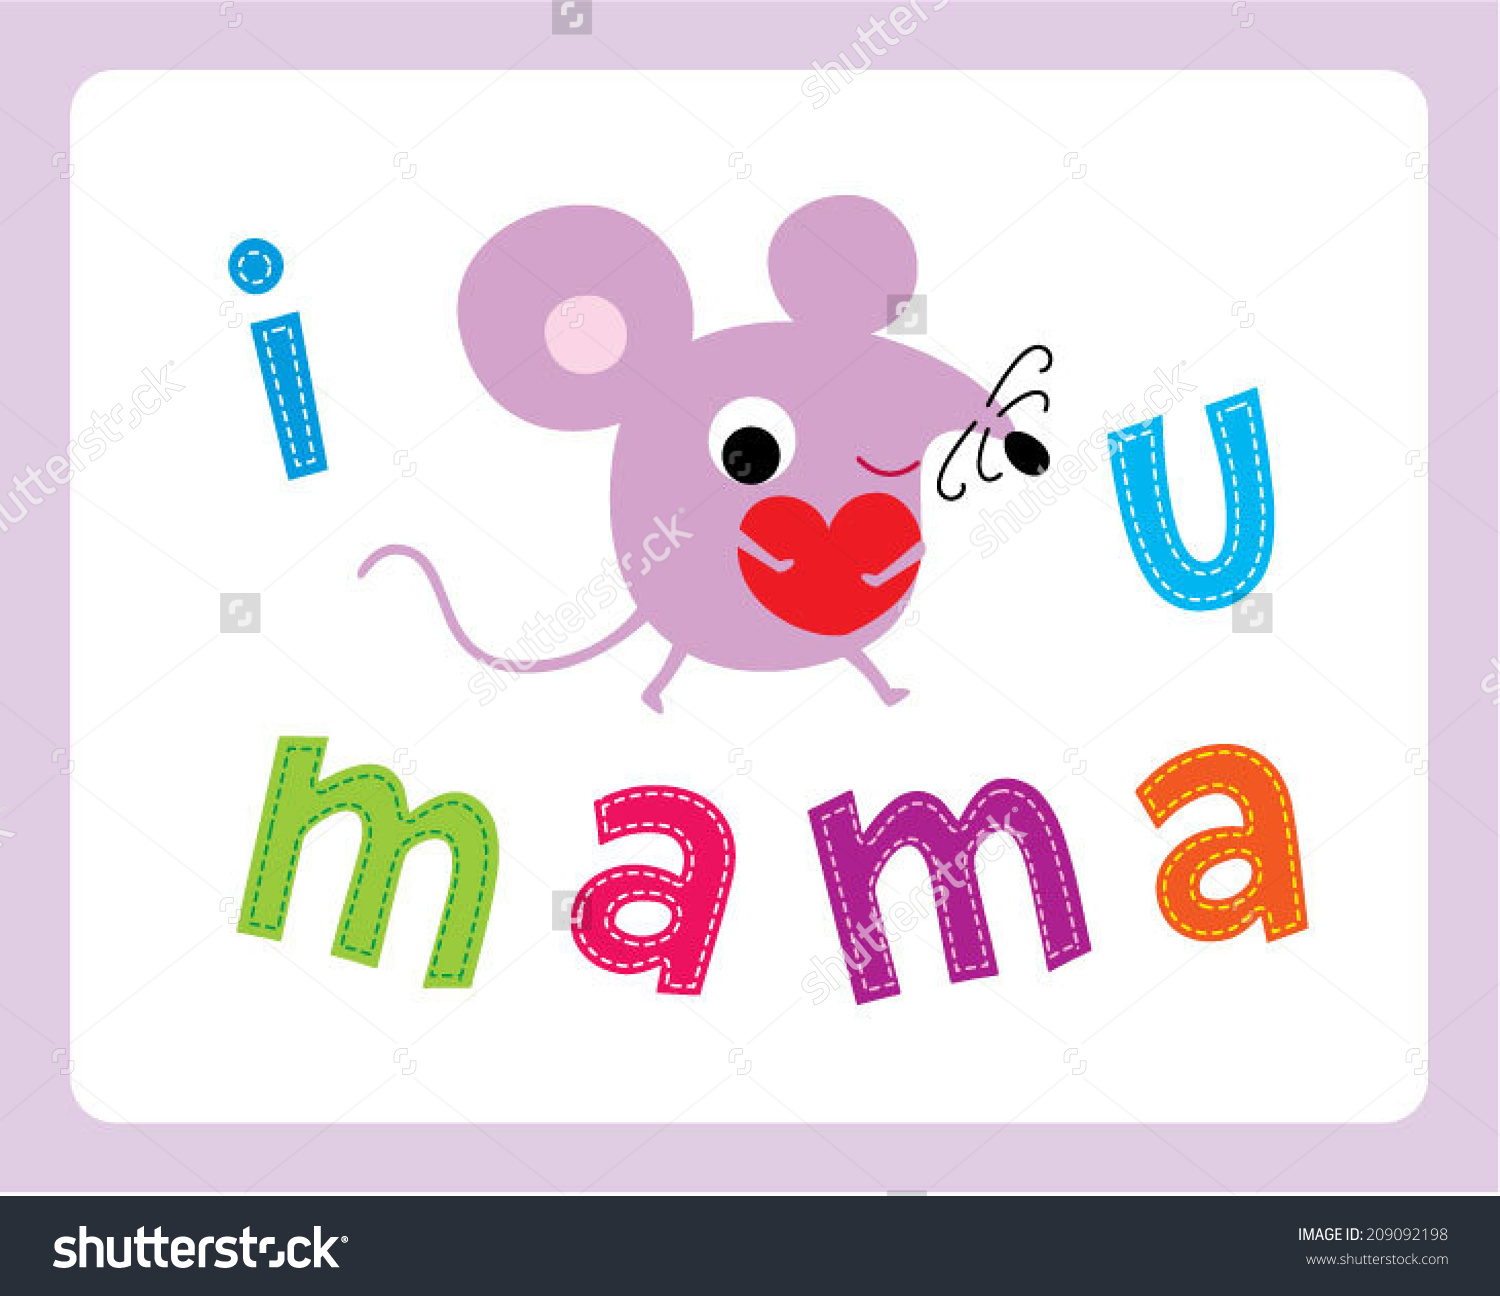 I love u mama clipart free library Love You Mama Rat Card Stock Vector 209092198 - Shutterstock free library